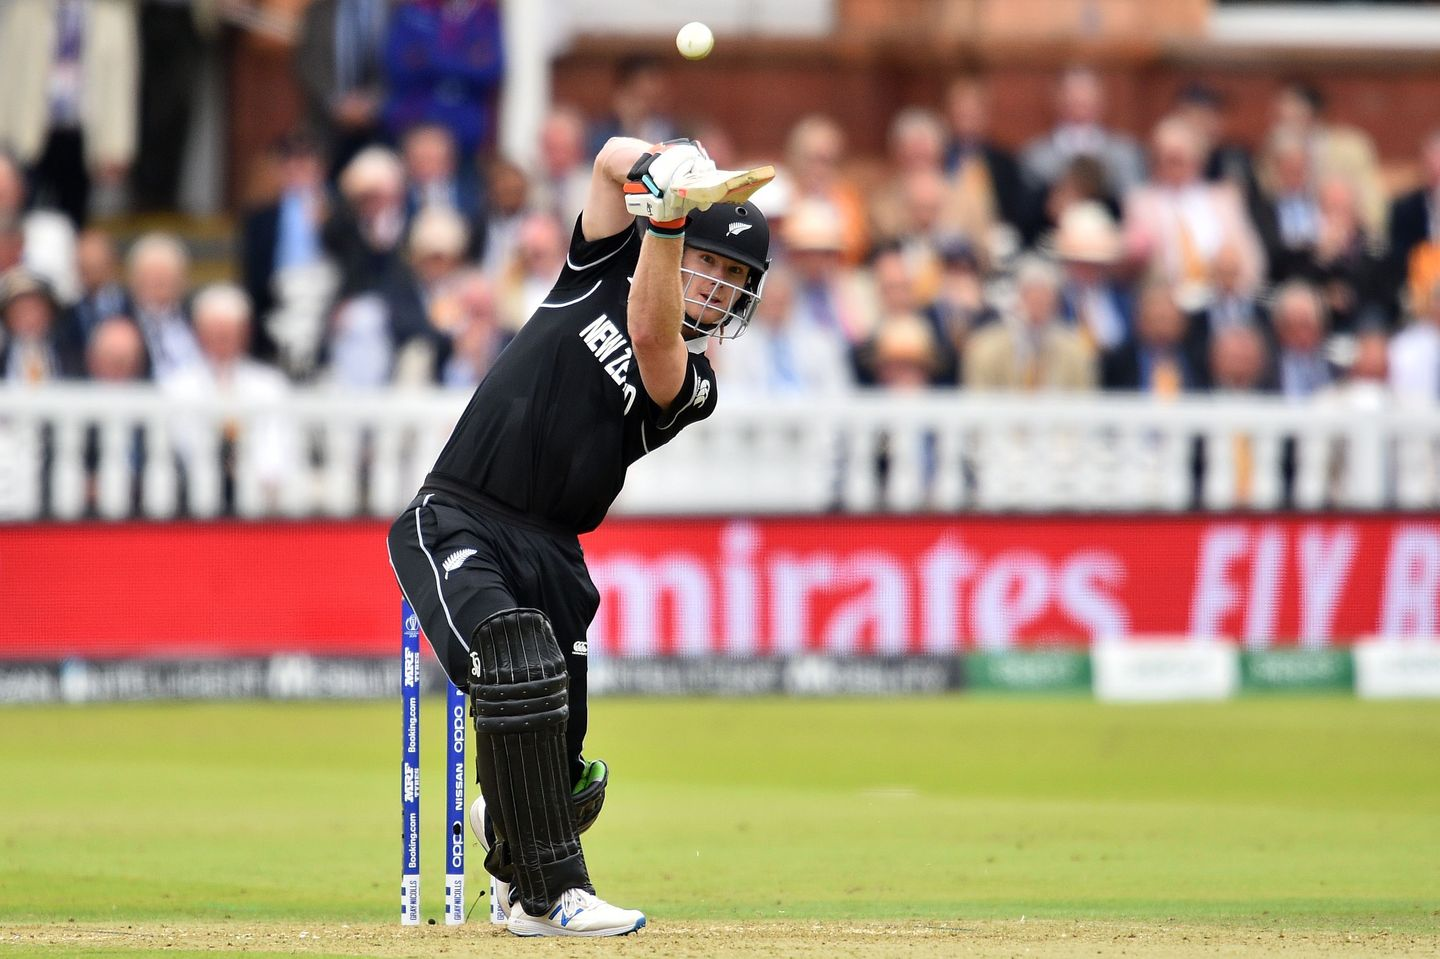 New Zealand's Jimmy Neesham in the World Cup. He has put himself in for The Hundred Draft